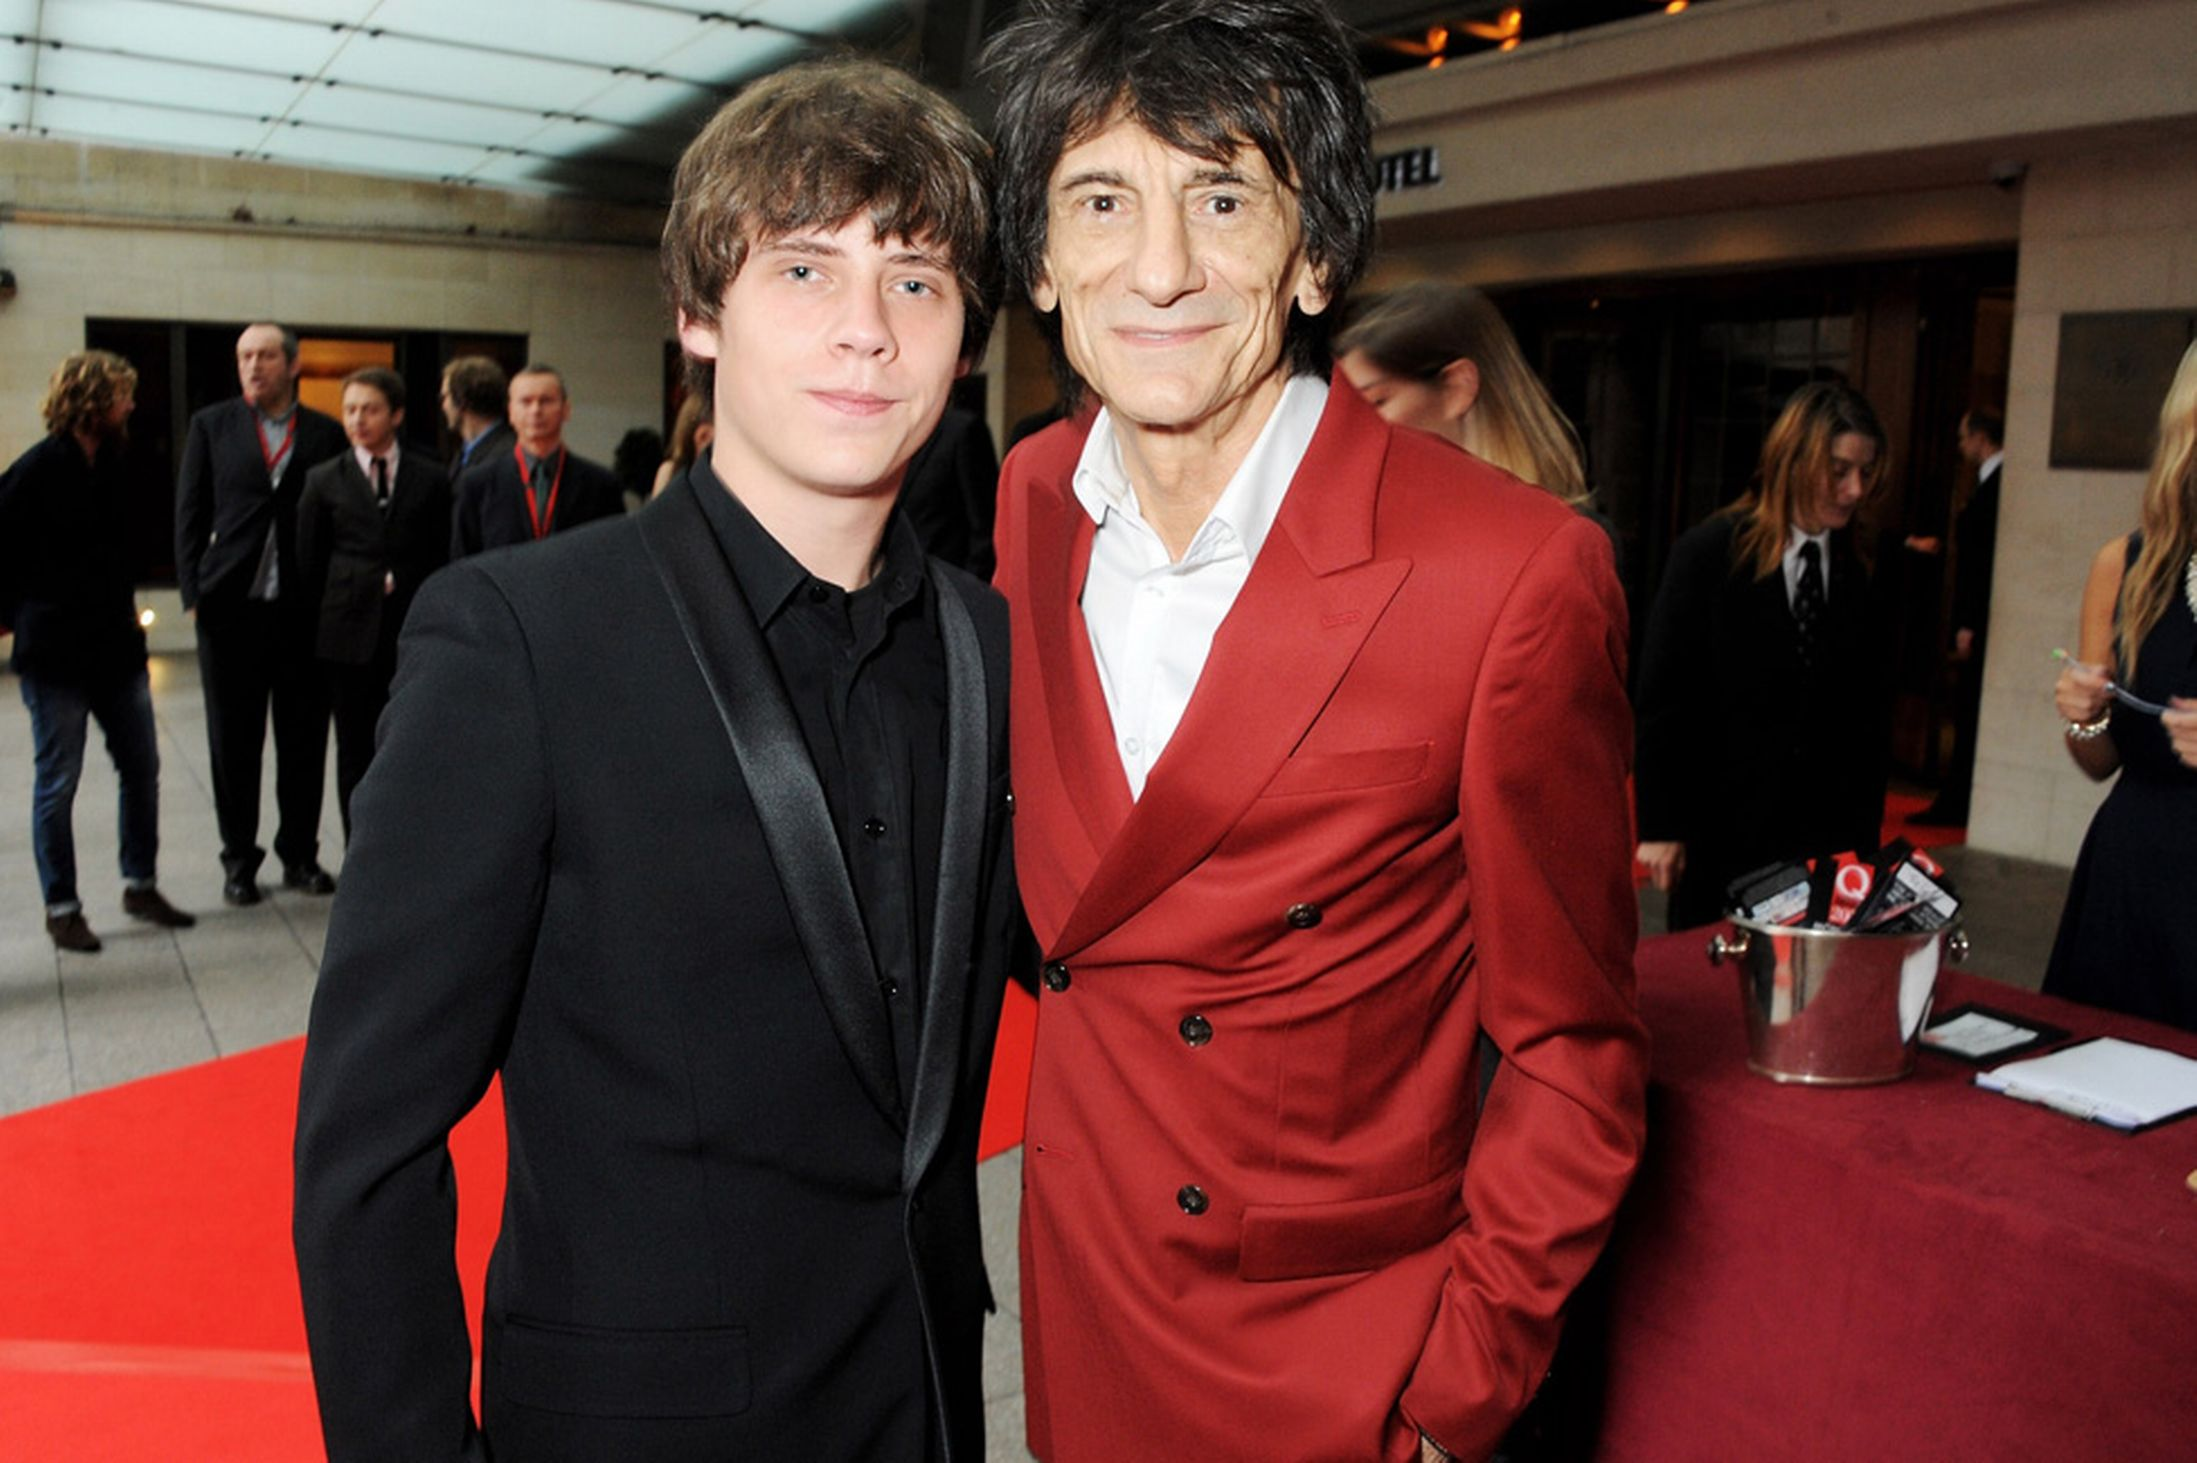 Jake Bugg and Ronnie Wood at The Q Awards